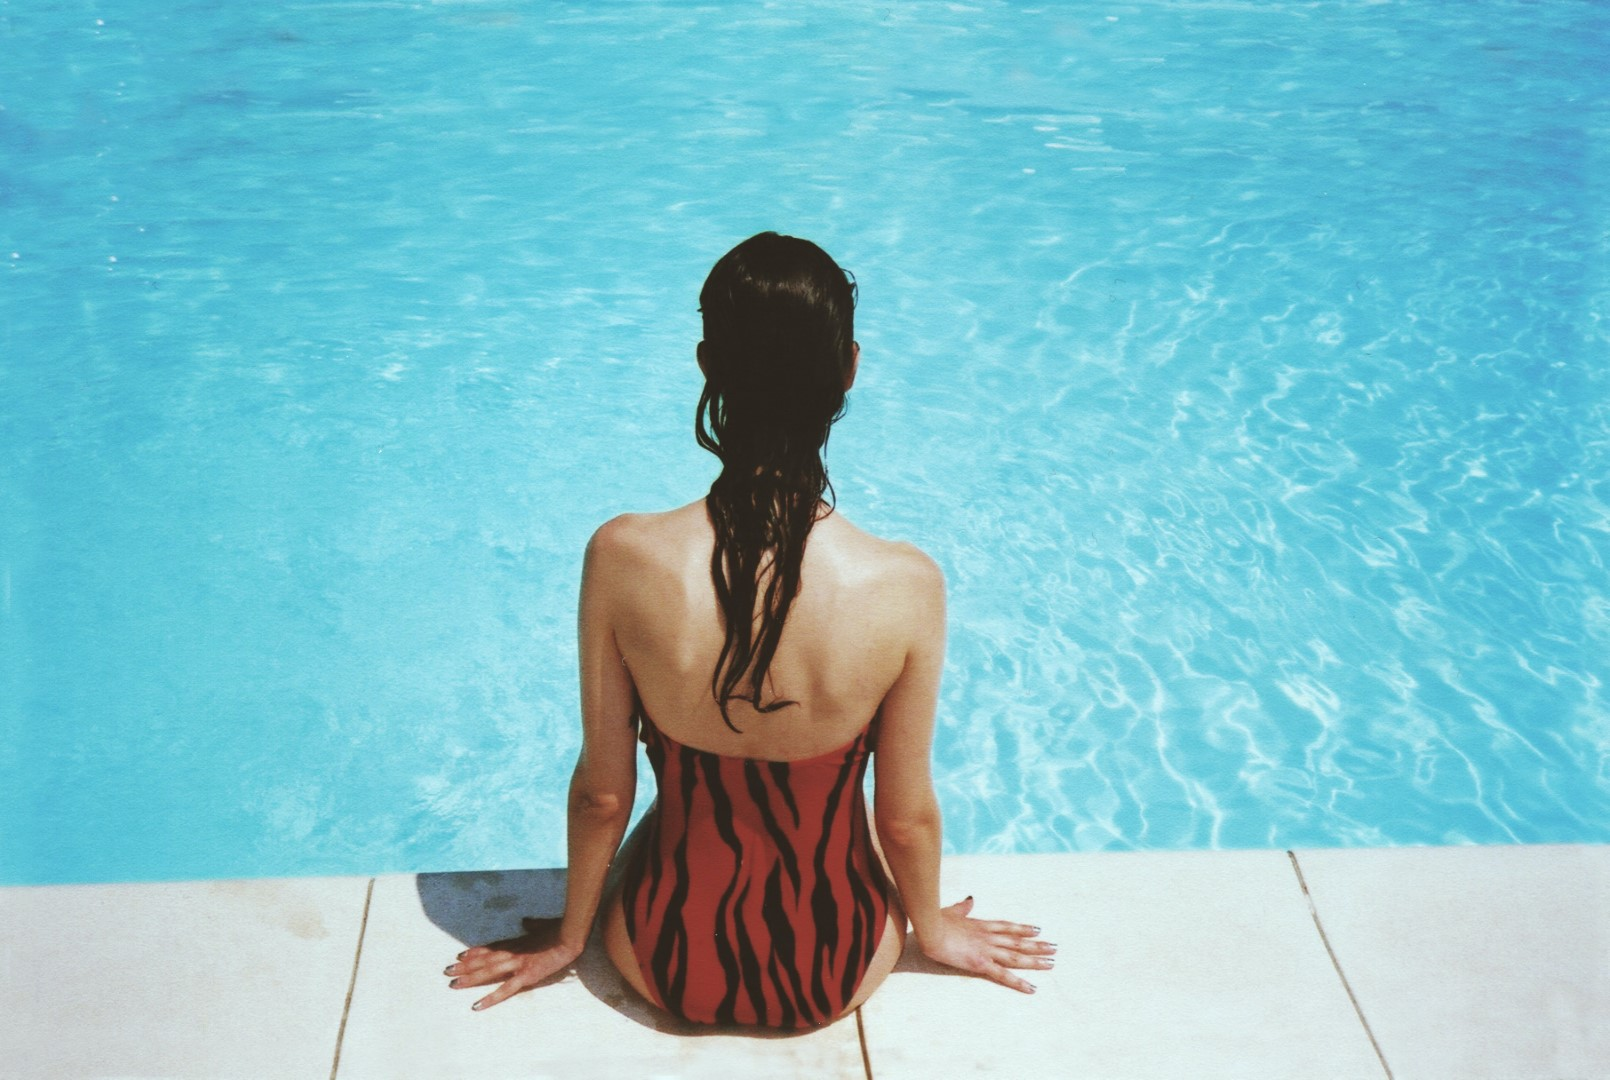 margot-pandone-woman by the pool